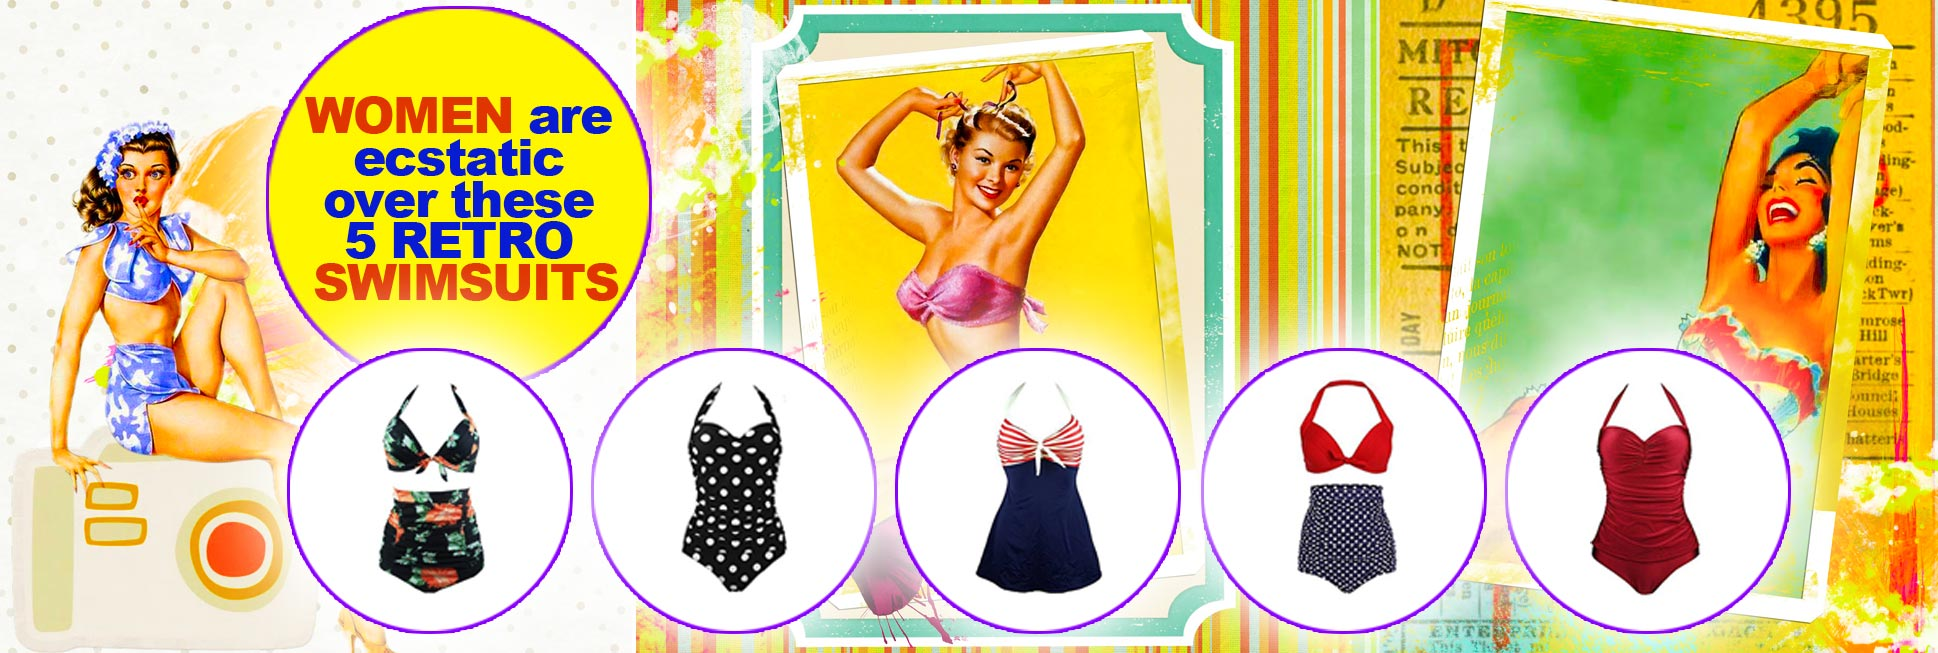 Women are ecstatic over these 5 retro swimsuits